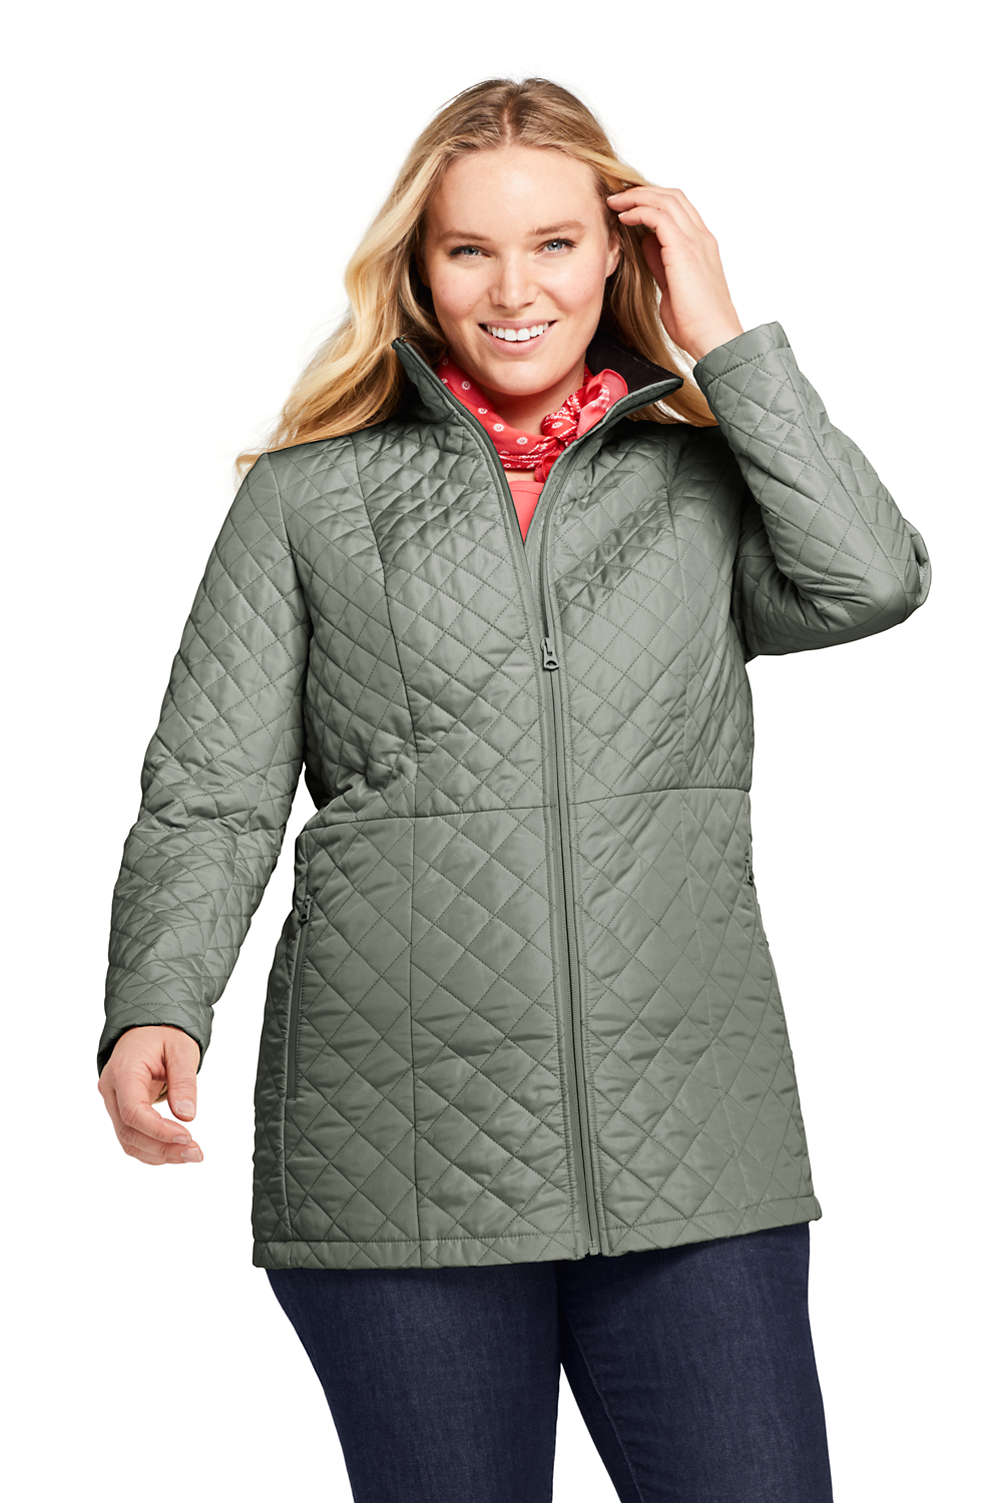 fbc1d536b6 Women s Plus Size Quilted Insulated Long Jacket from Lands  End